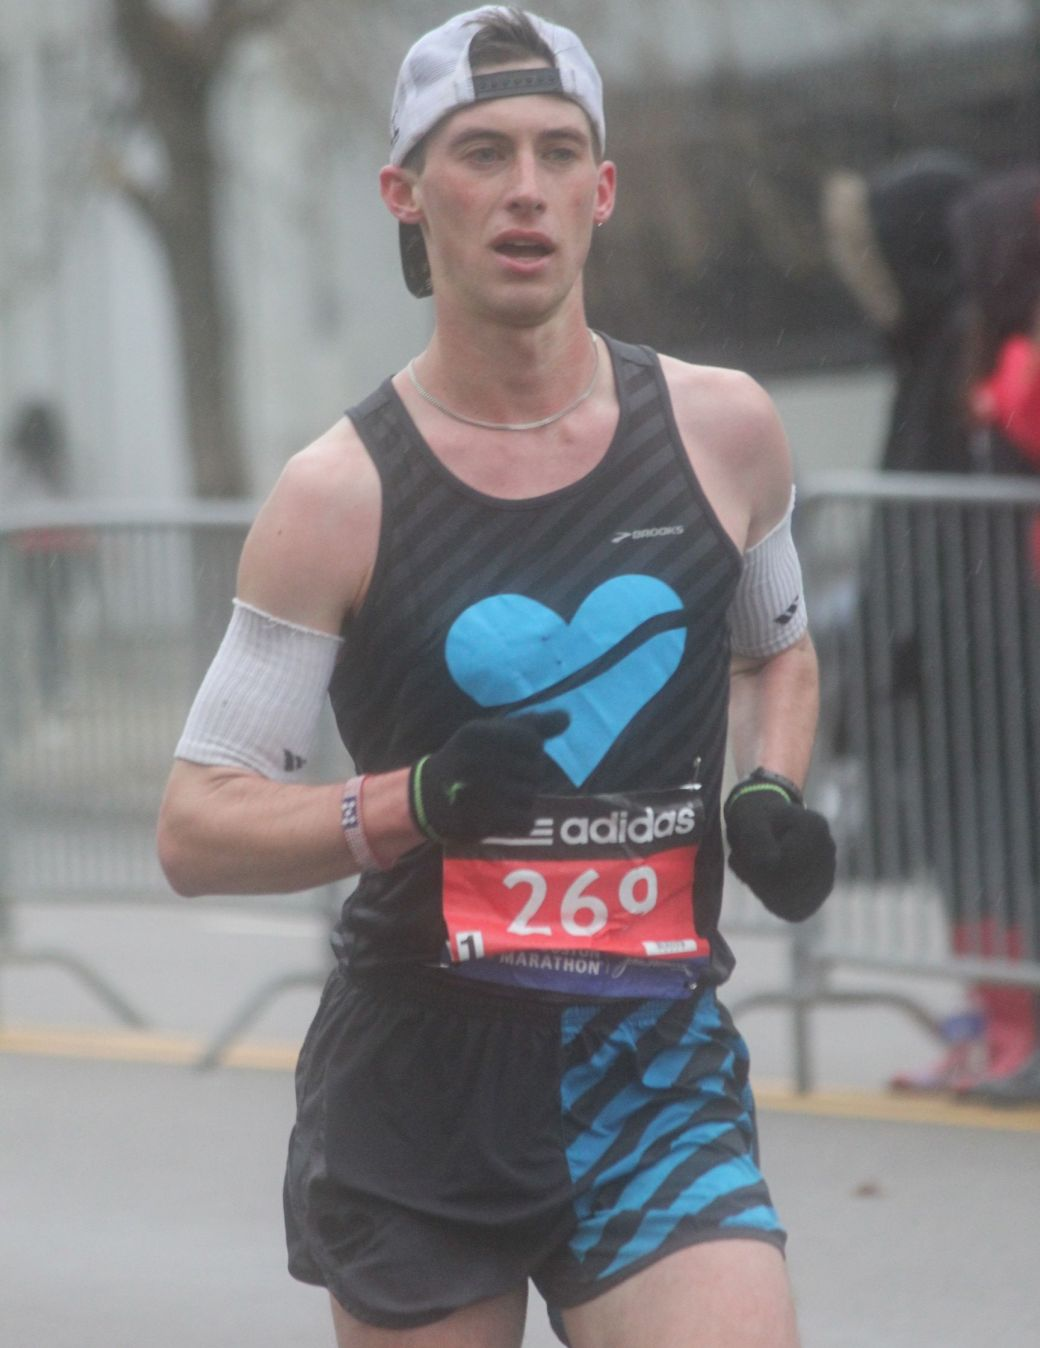 boston marathon april 20 2015 racer number 269